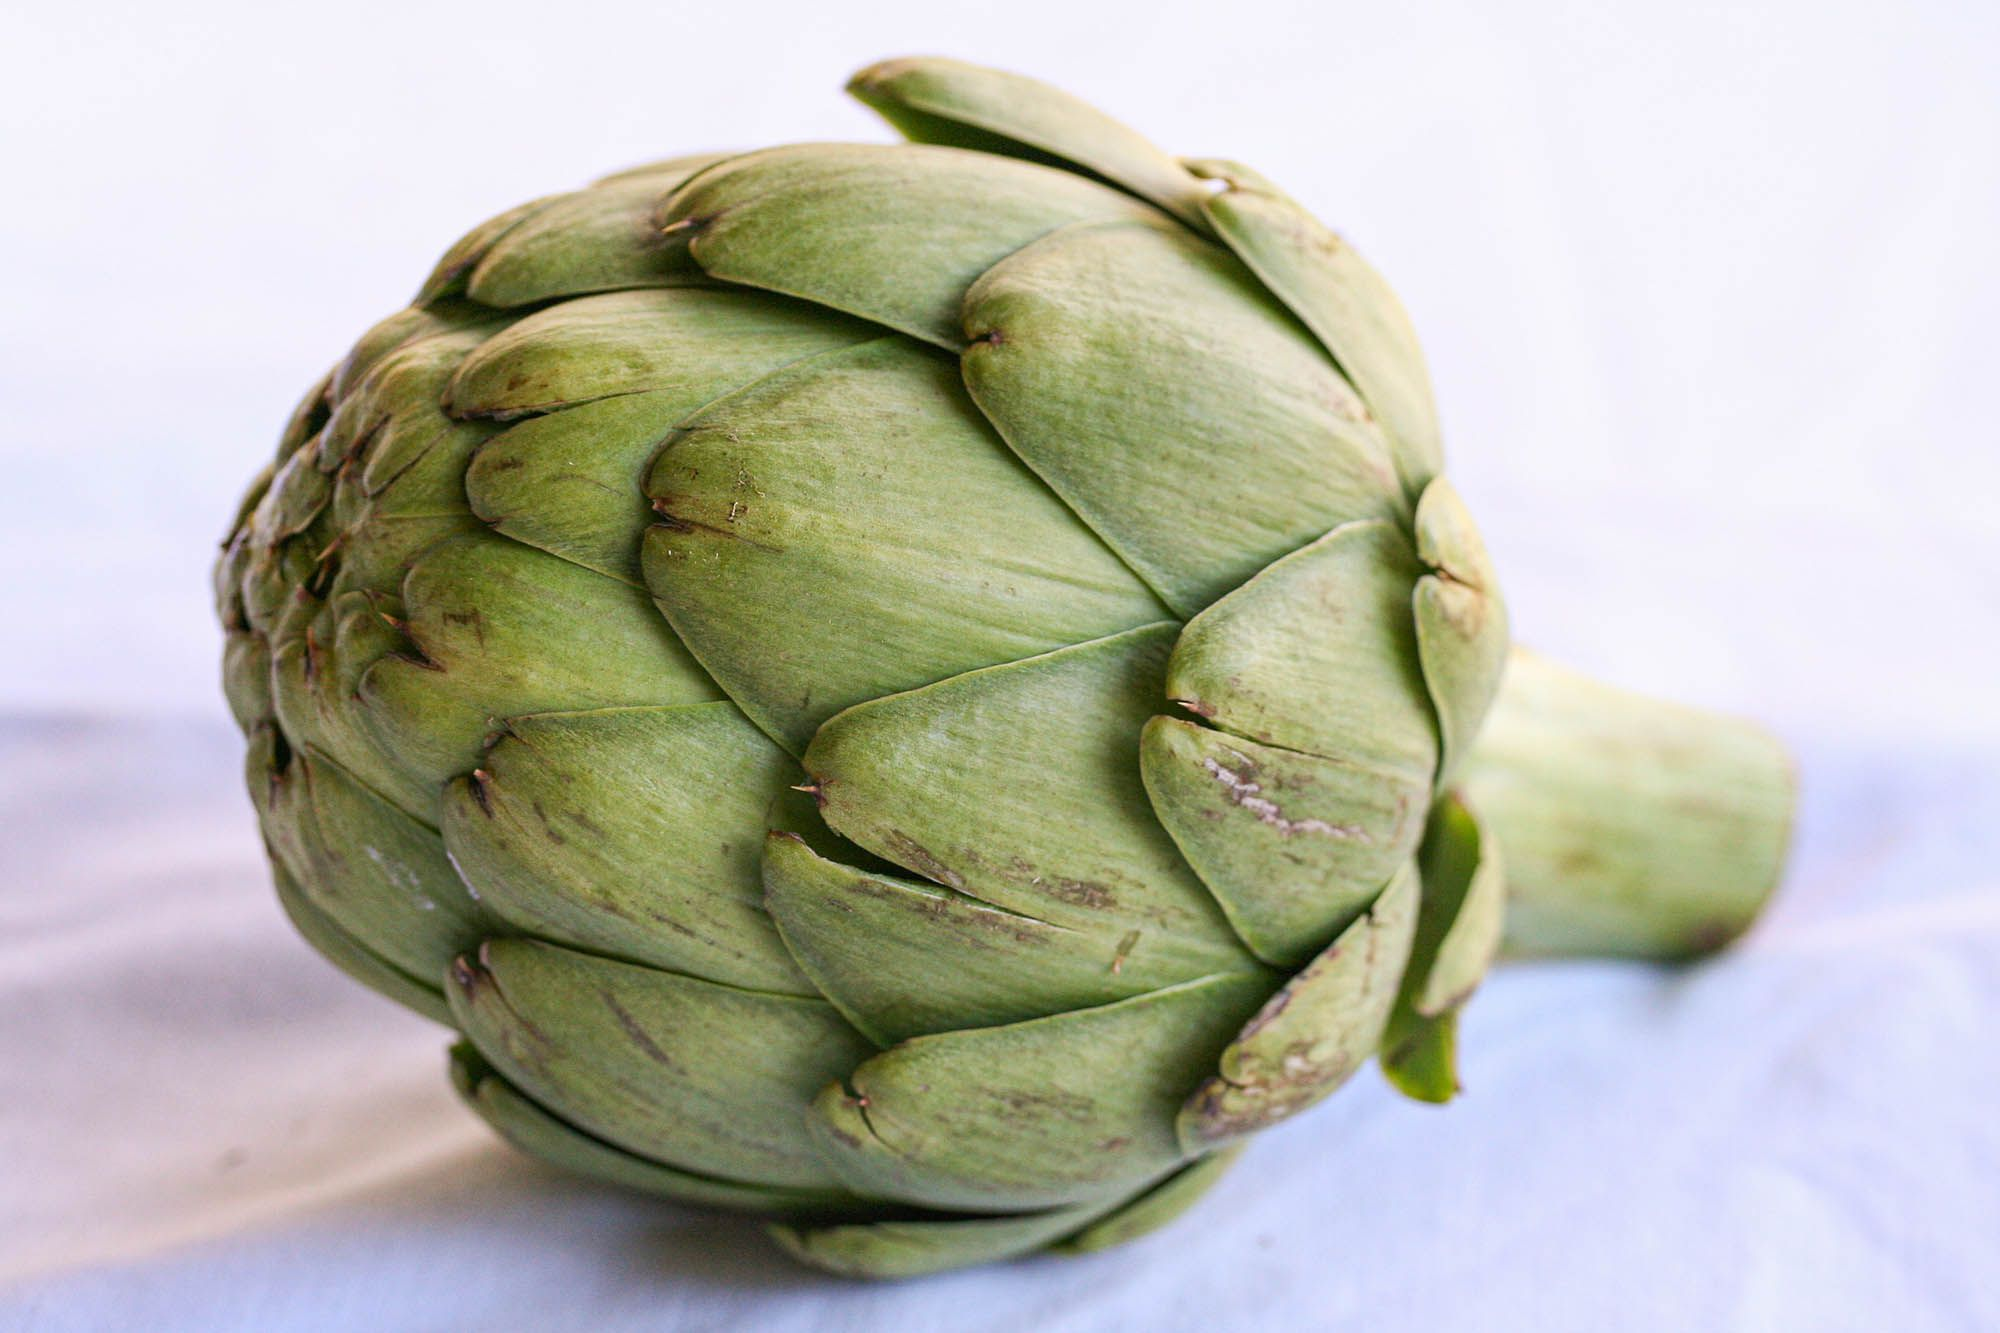 How To Cook And Eat An Artichoke